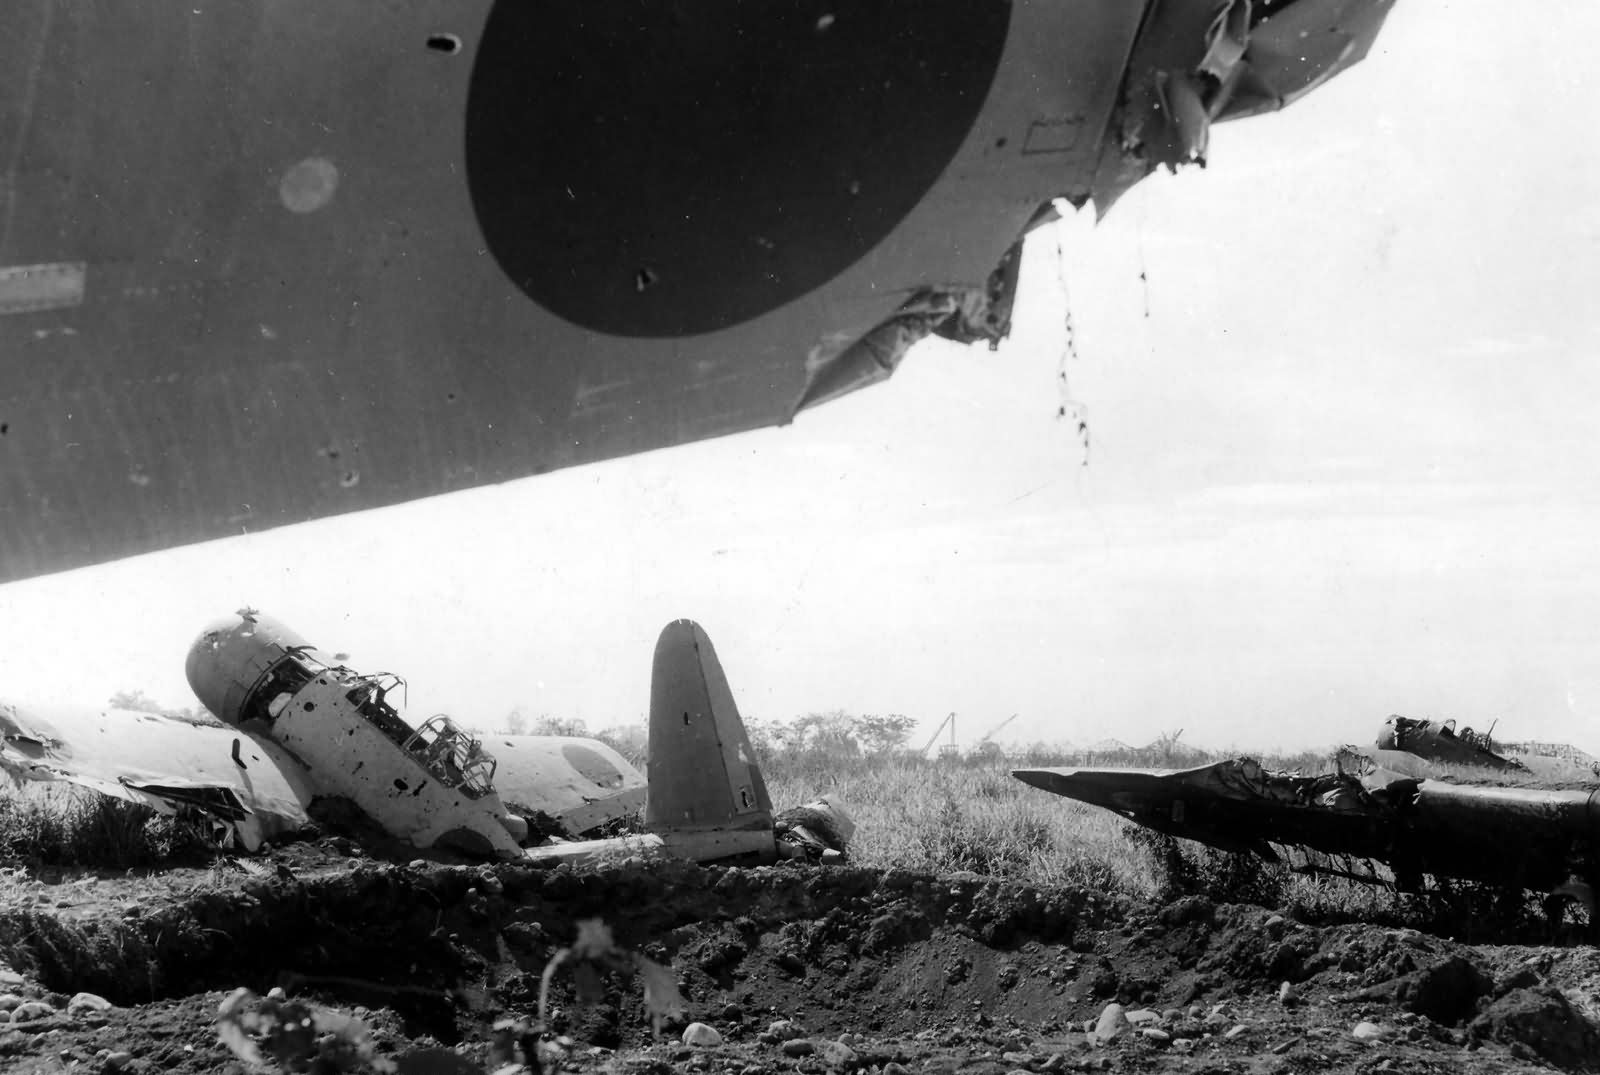 Japanese_Aircraft_Wrecks_at_Lae_New_Guinea_1943.jpg